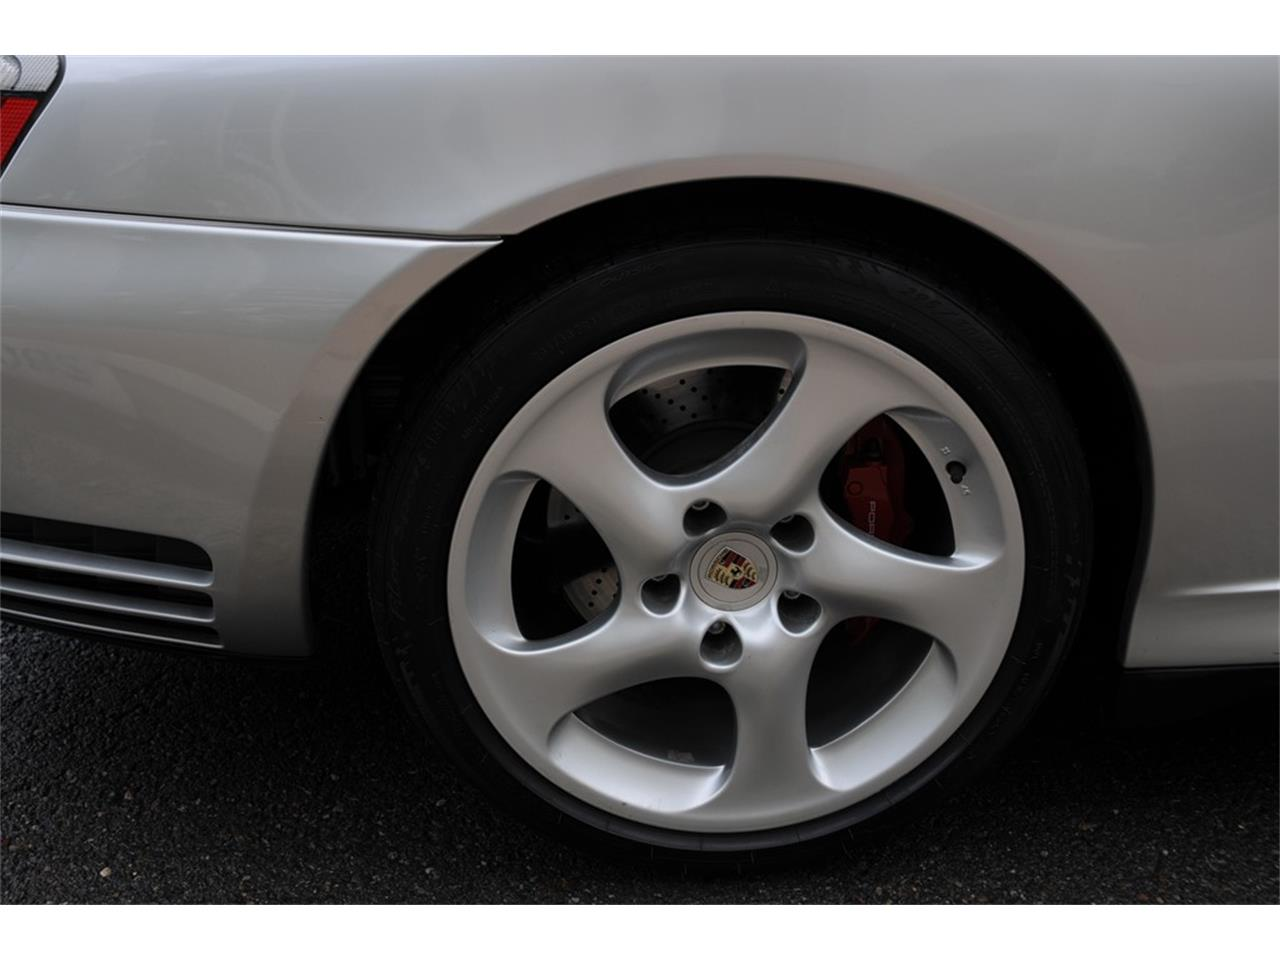 Large Picture of 2004 Porsche 911 Carrera 4S Cabriolet located in California - $32,990.00 Offered by Star European Inc. - QK9K